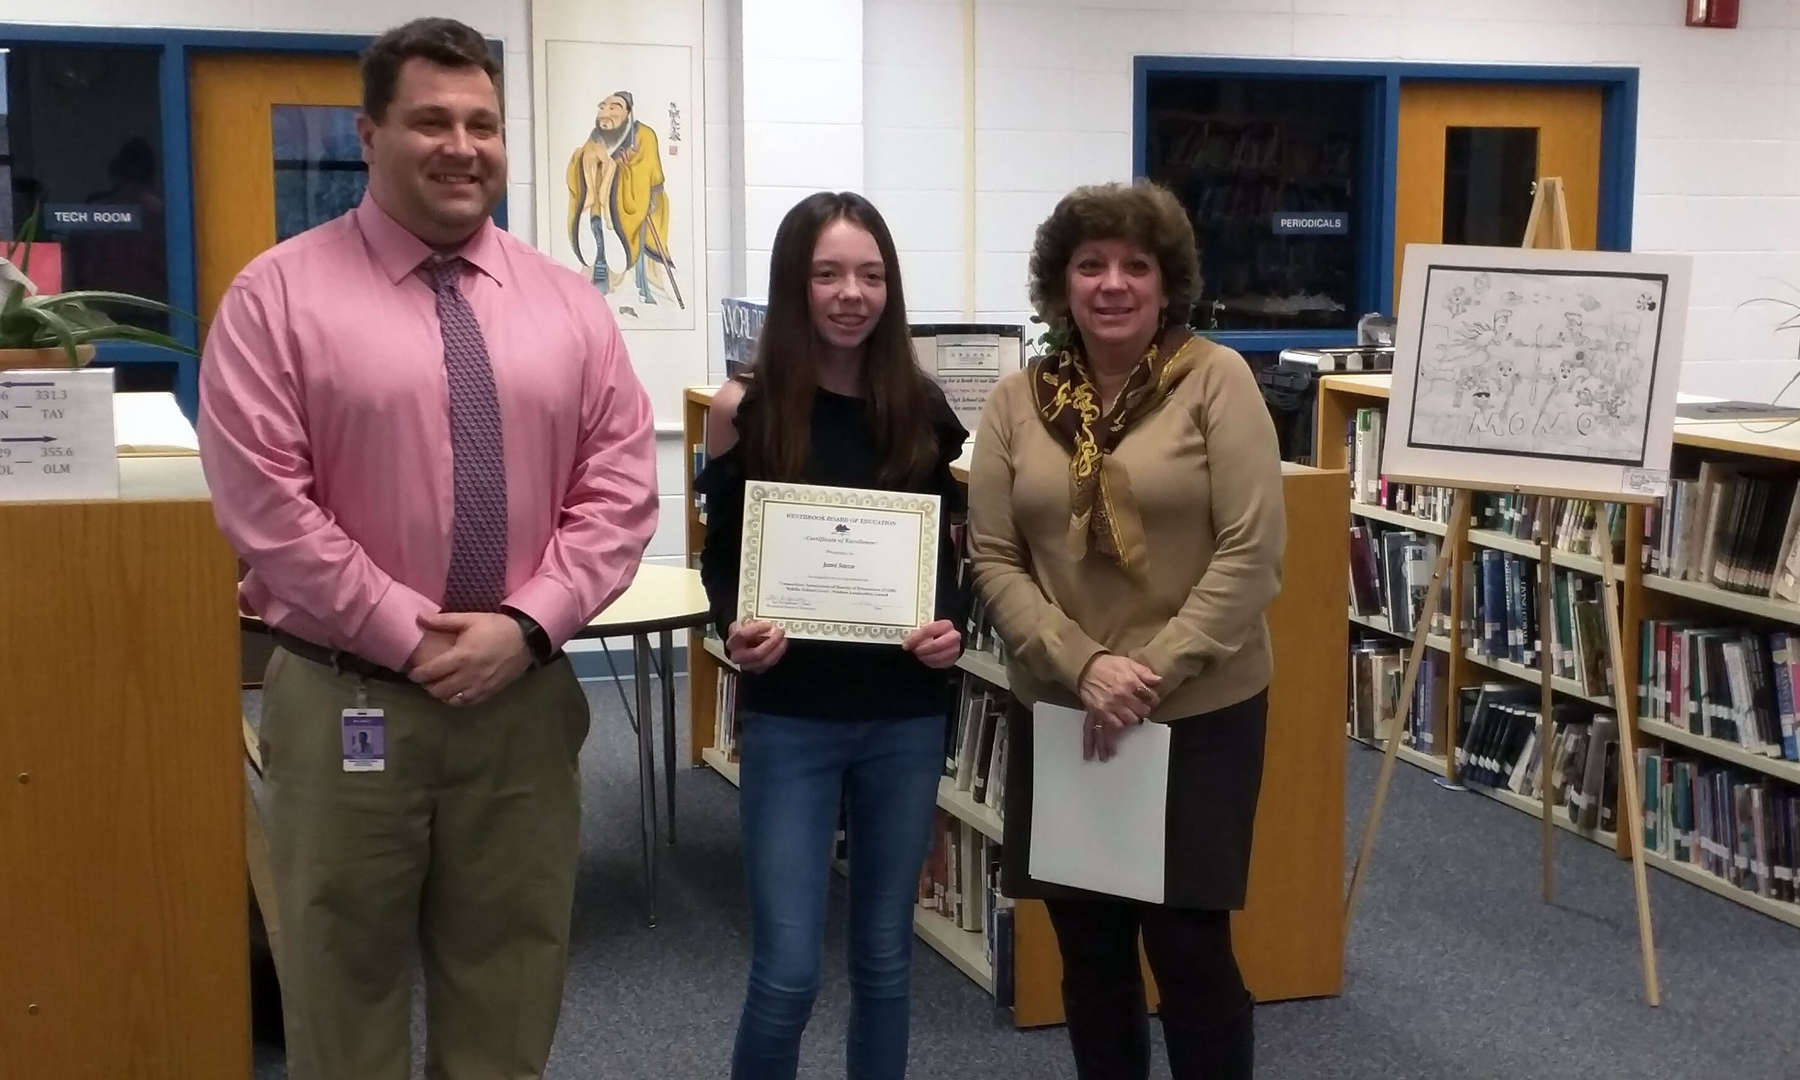 Jamie S. was one of two Middle School students to receive the CABE Student Leadership Award.